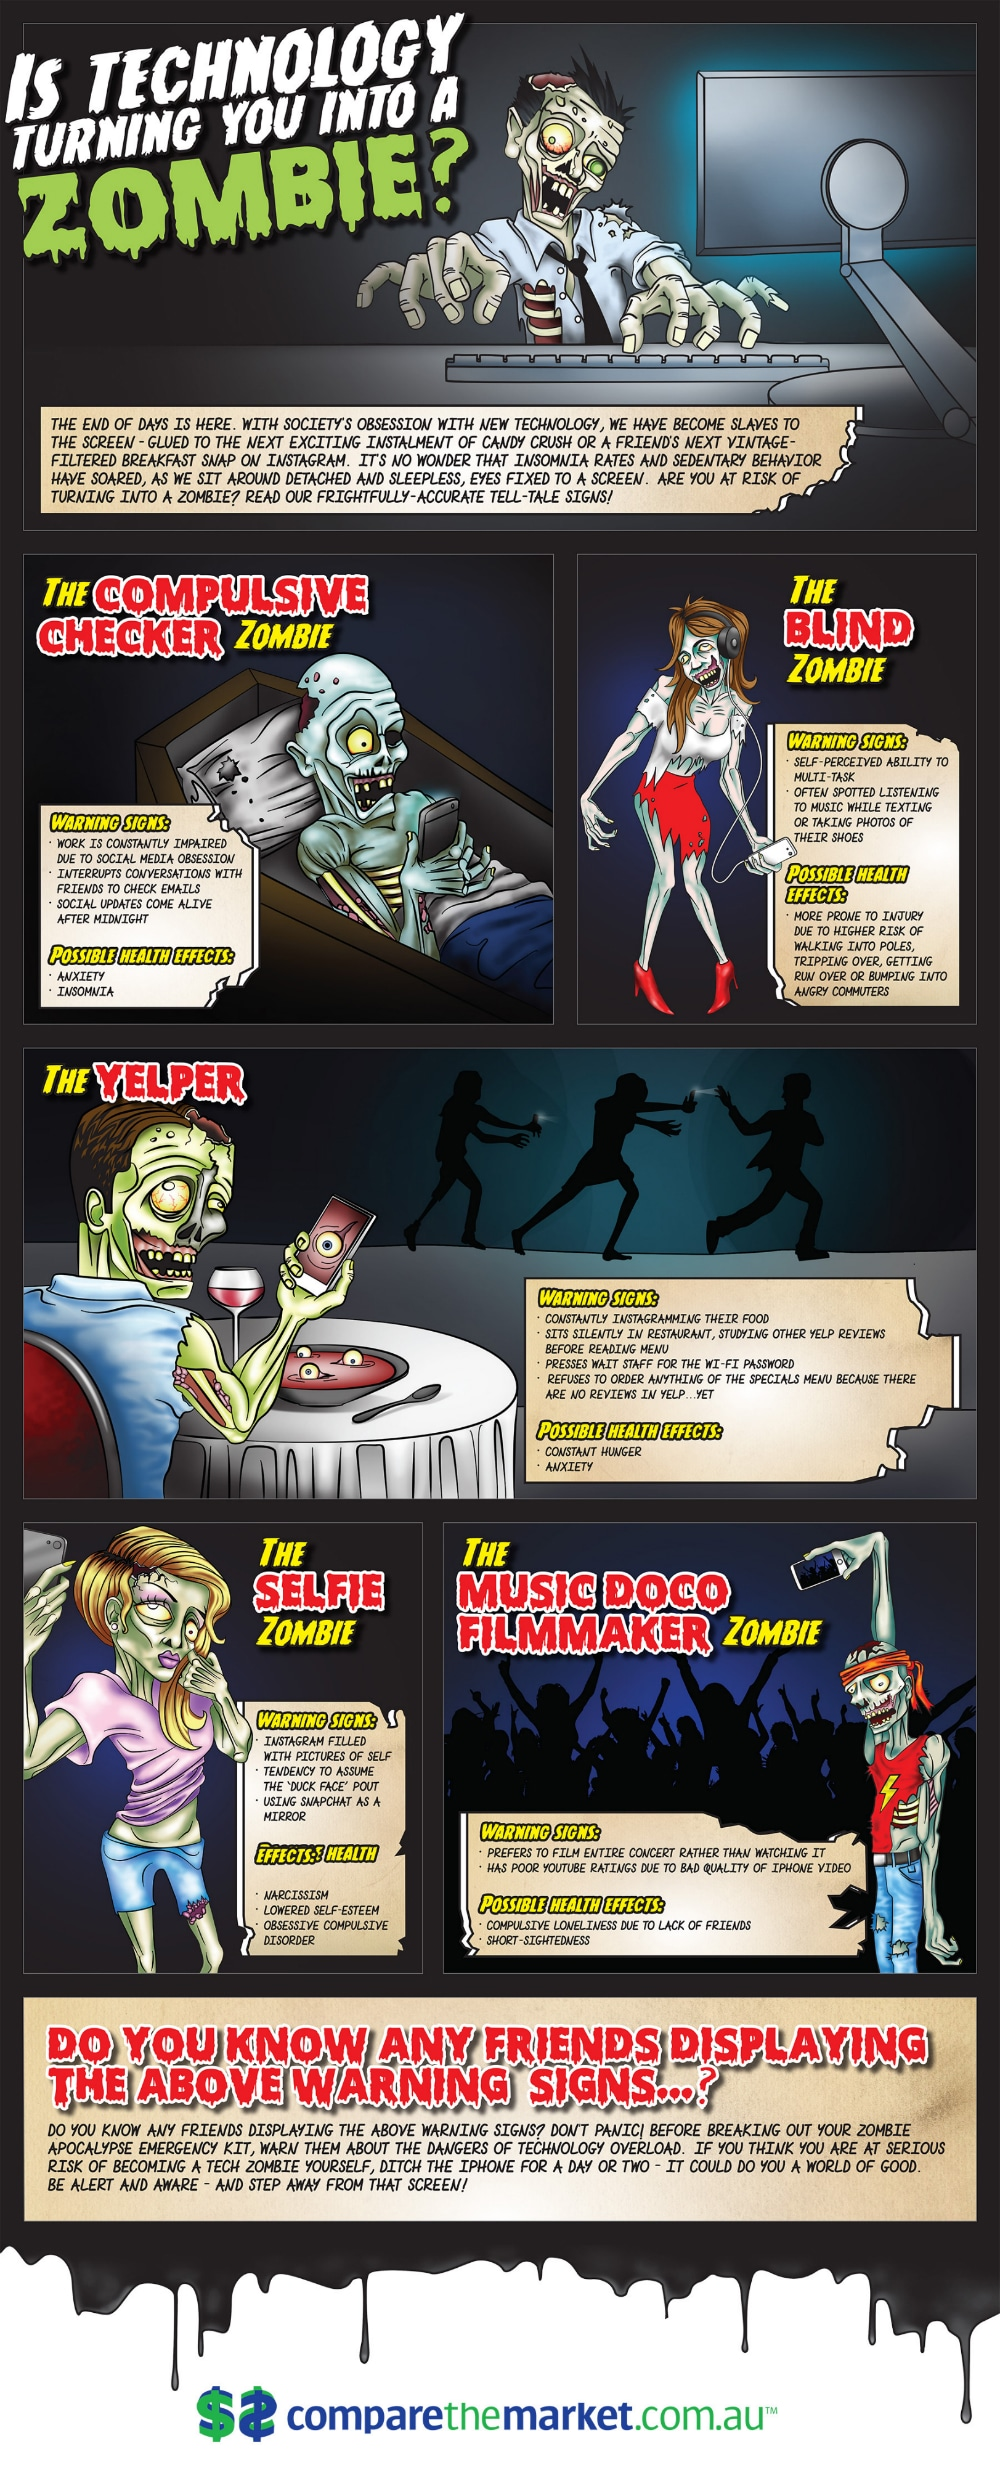 Full Technology Zombie Infographic